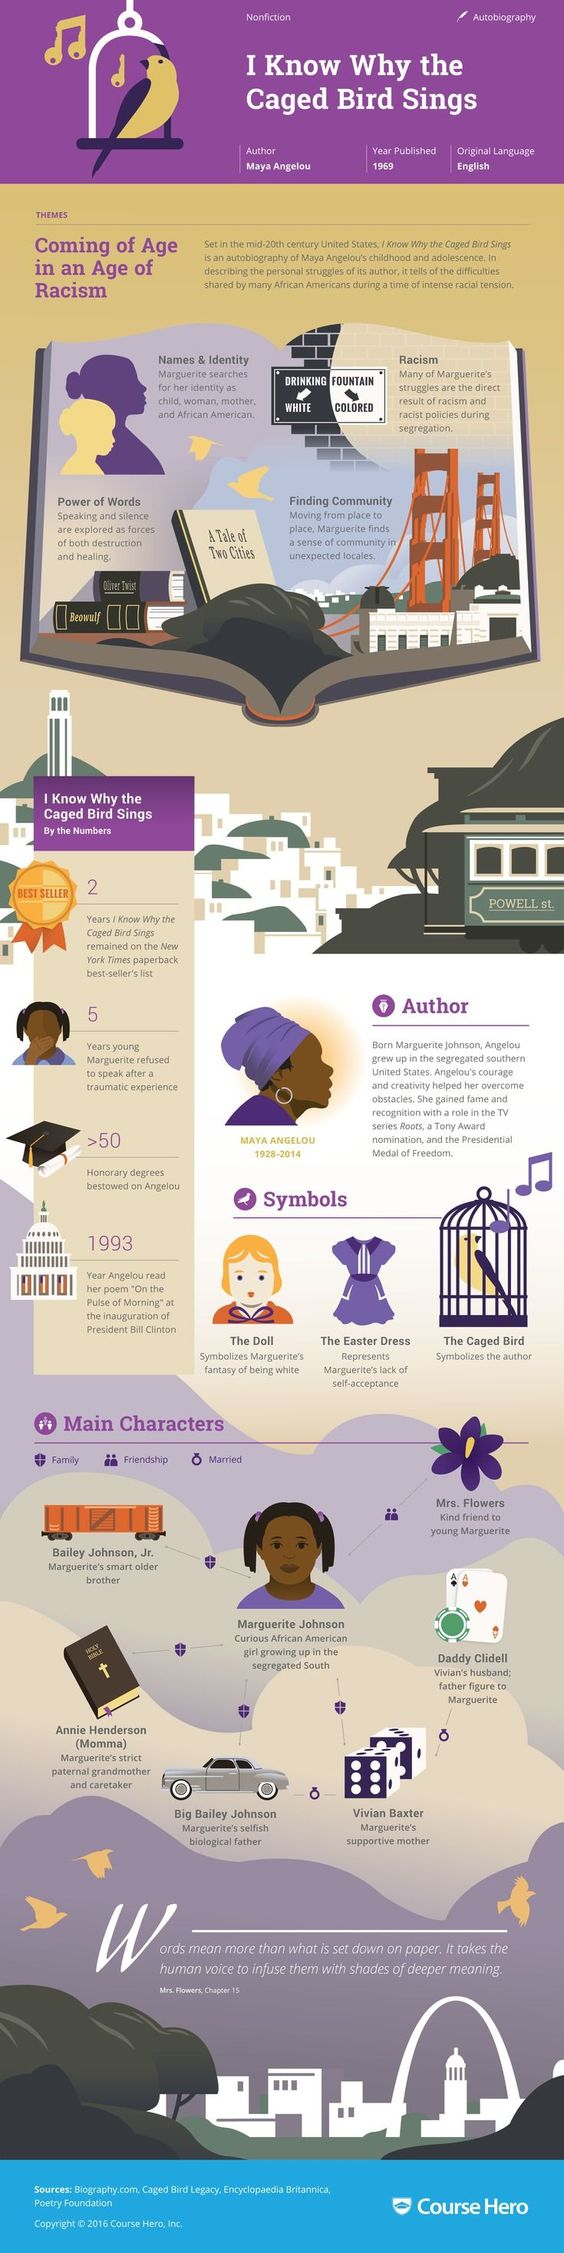 this coursehero infographic on i know why the caged bird sings is this coursehero infographic on i know why the caged bird sings is both visually